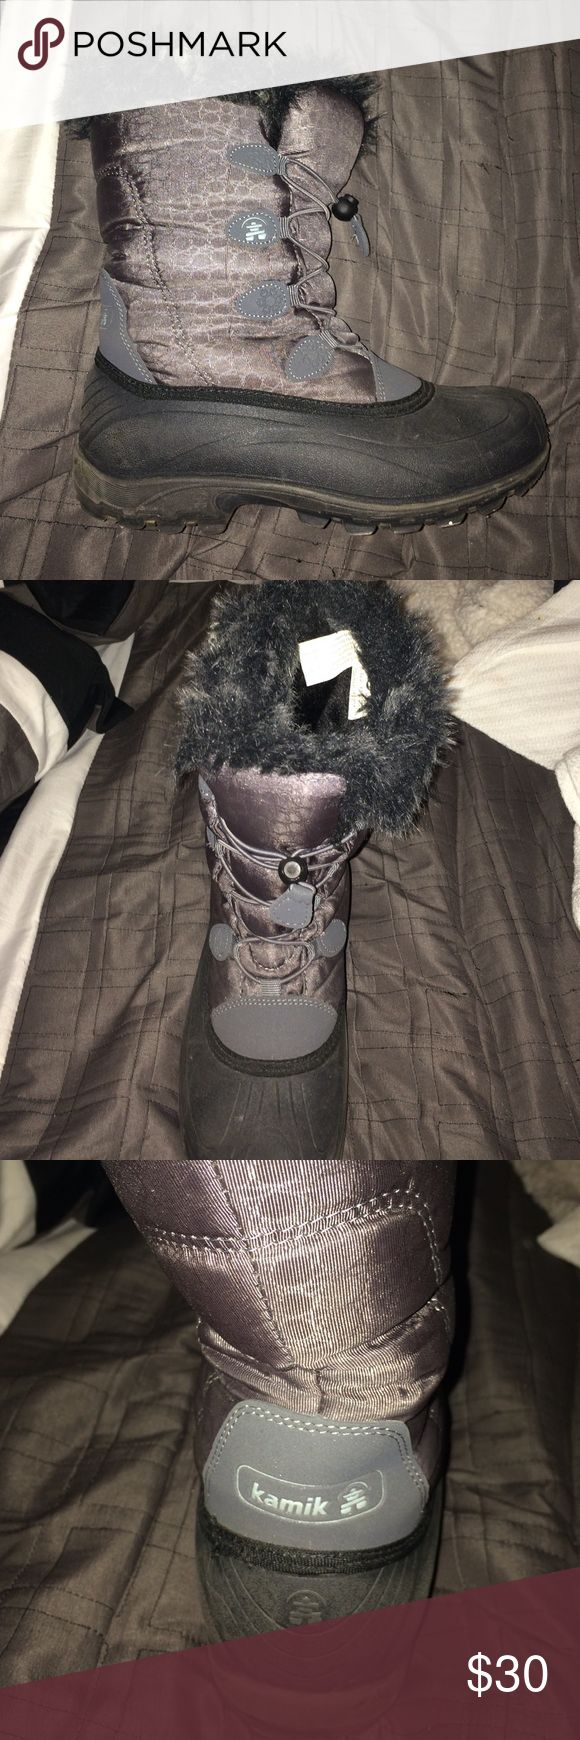 Kamik winter boots size 8 (pre-owned) In good conditions Kamik winter boots size 8 for women Kamik Shoes Winter & Rain Boots